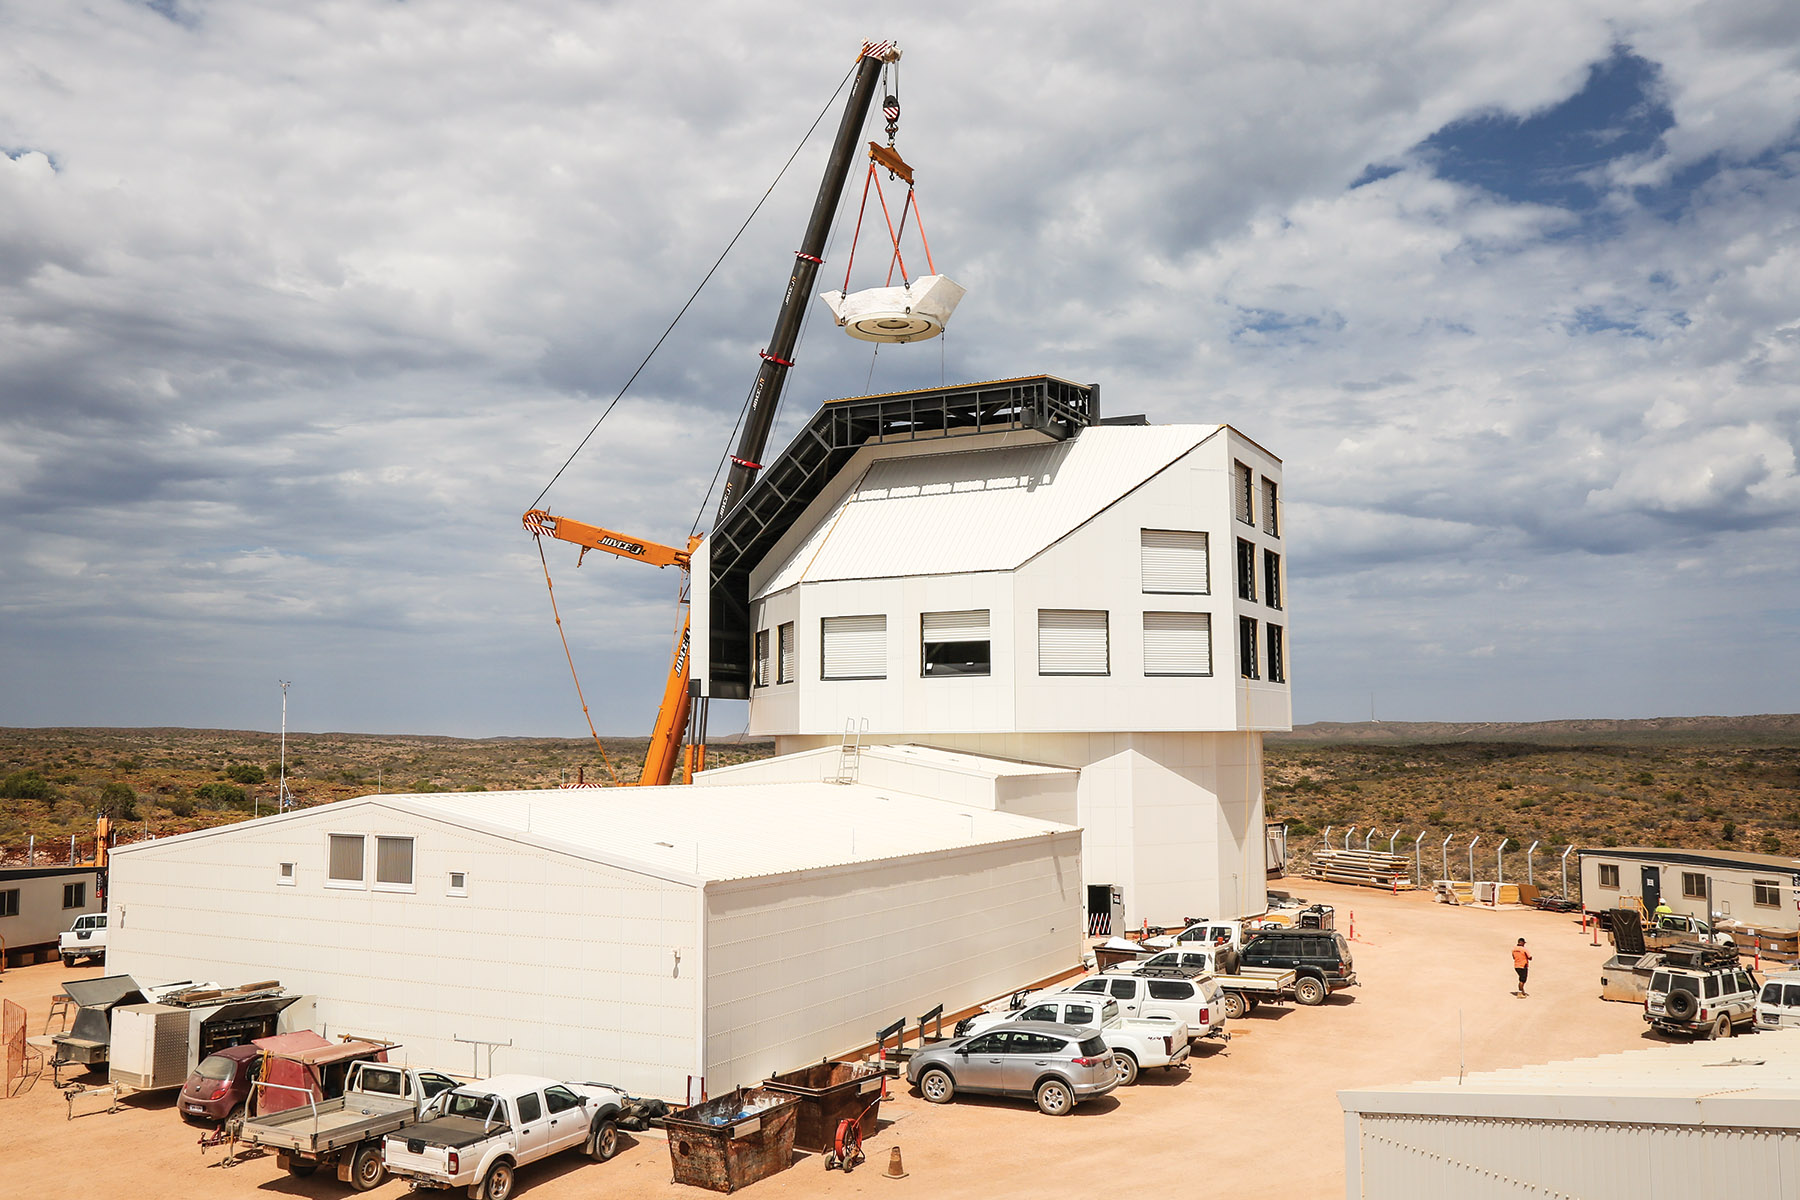 The photograph shows the new facility under construction to house the Space Surveillance Telescope in Western Australia.